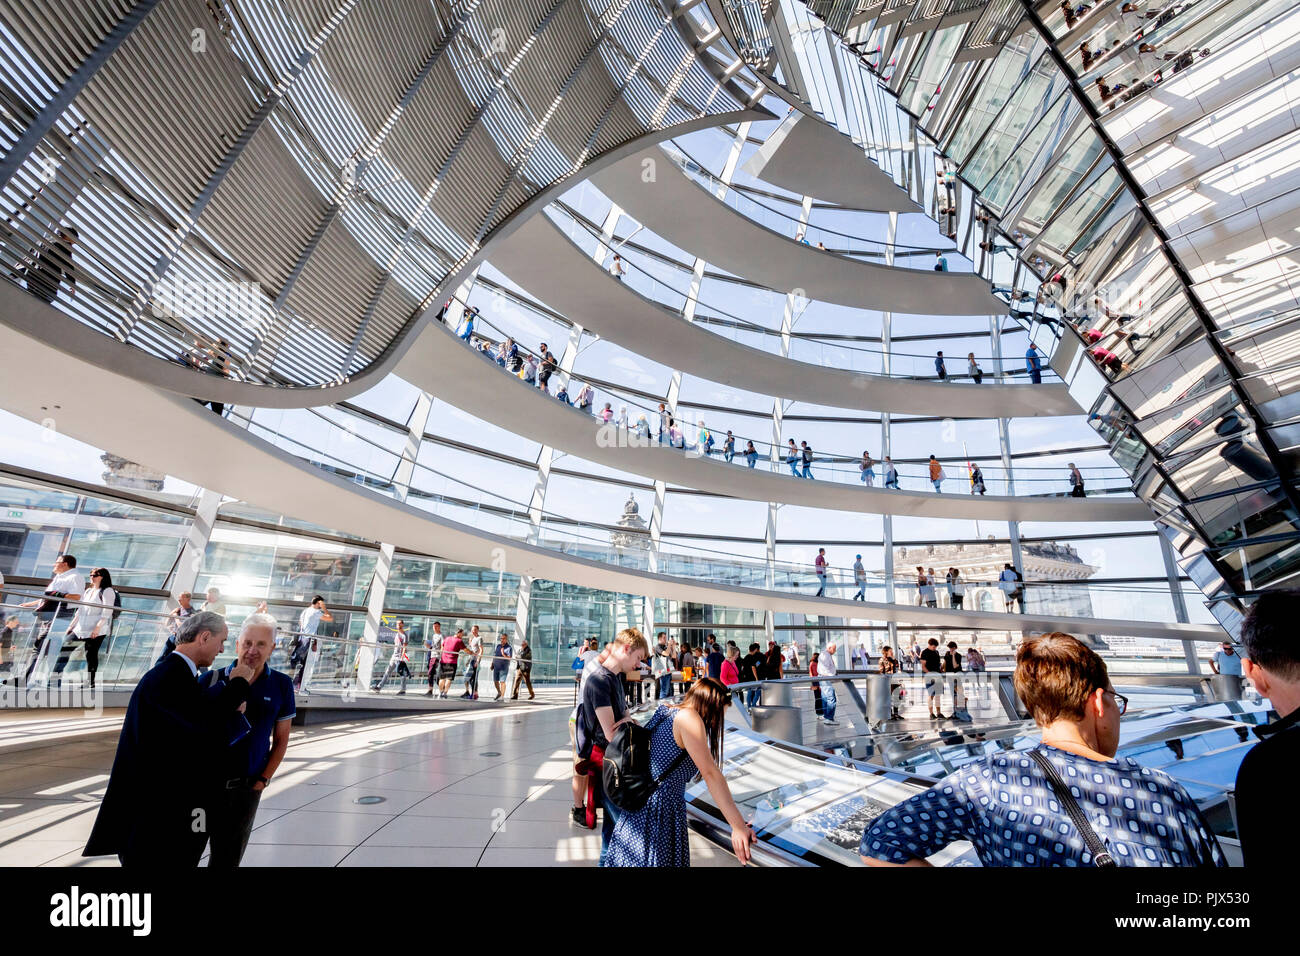 Berlin, Germany. 09th Sep, 2018. 09.09.2018, Berlin: Visitors walk through the dome of the Reichstag at the 'Day of Insights and Views' of the German Bundestag. Credit: Christoph Soeder/dpa/Alamy Live News - Stock Image